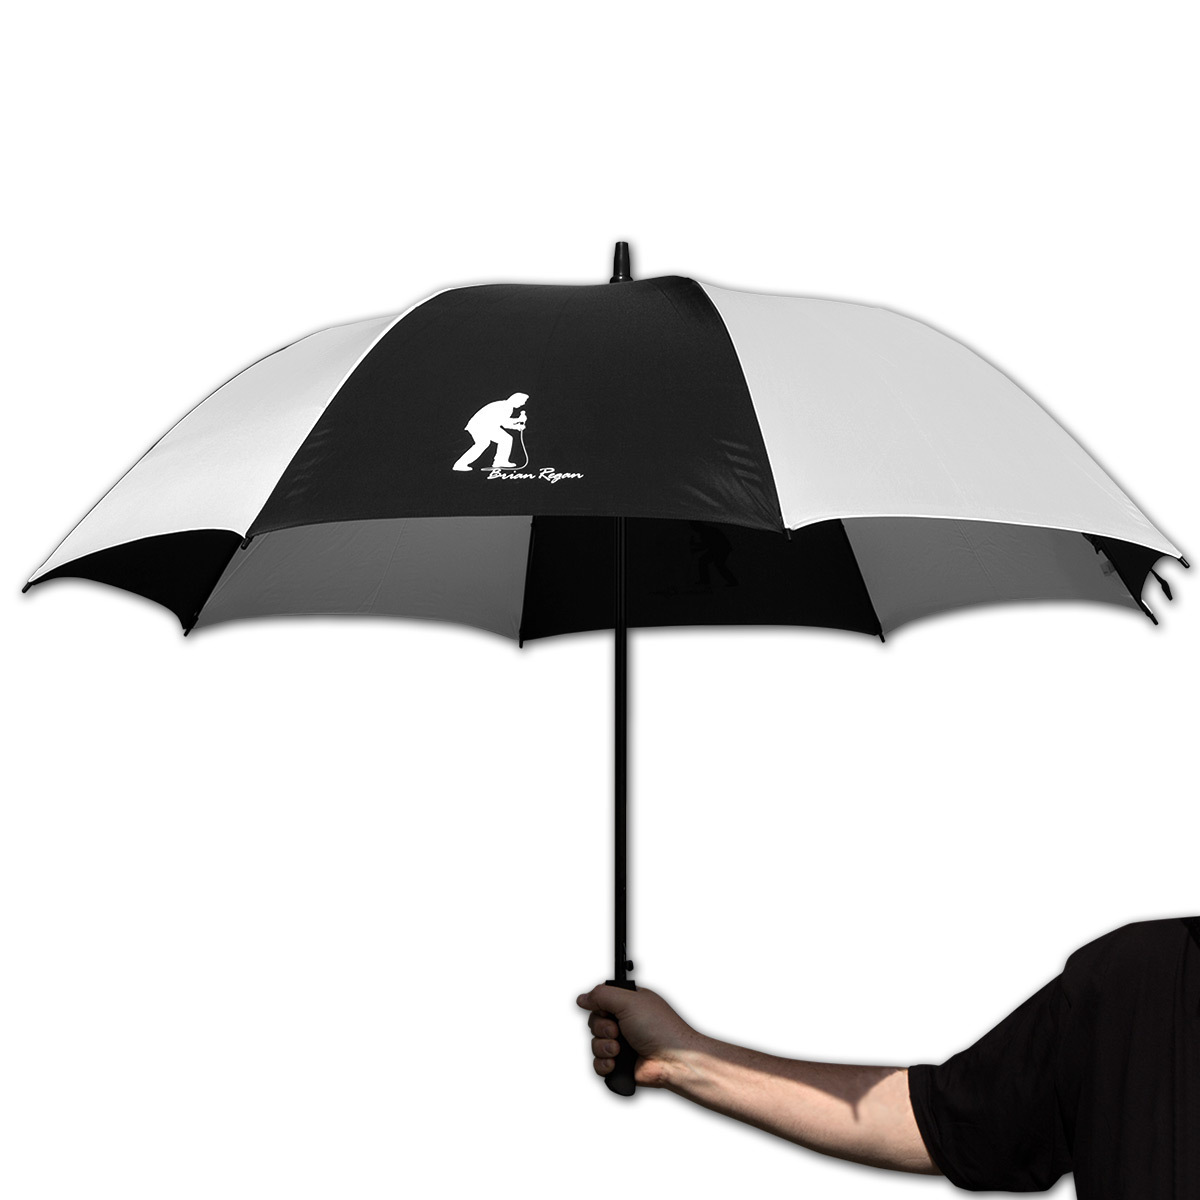 Brian Regan Silhouette Golf Umbrella